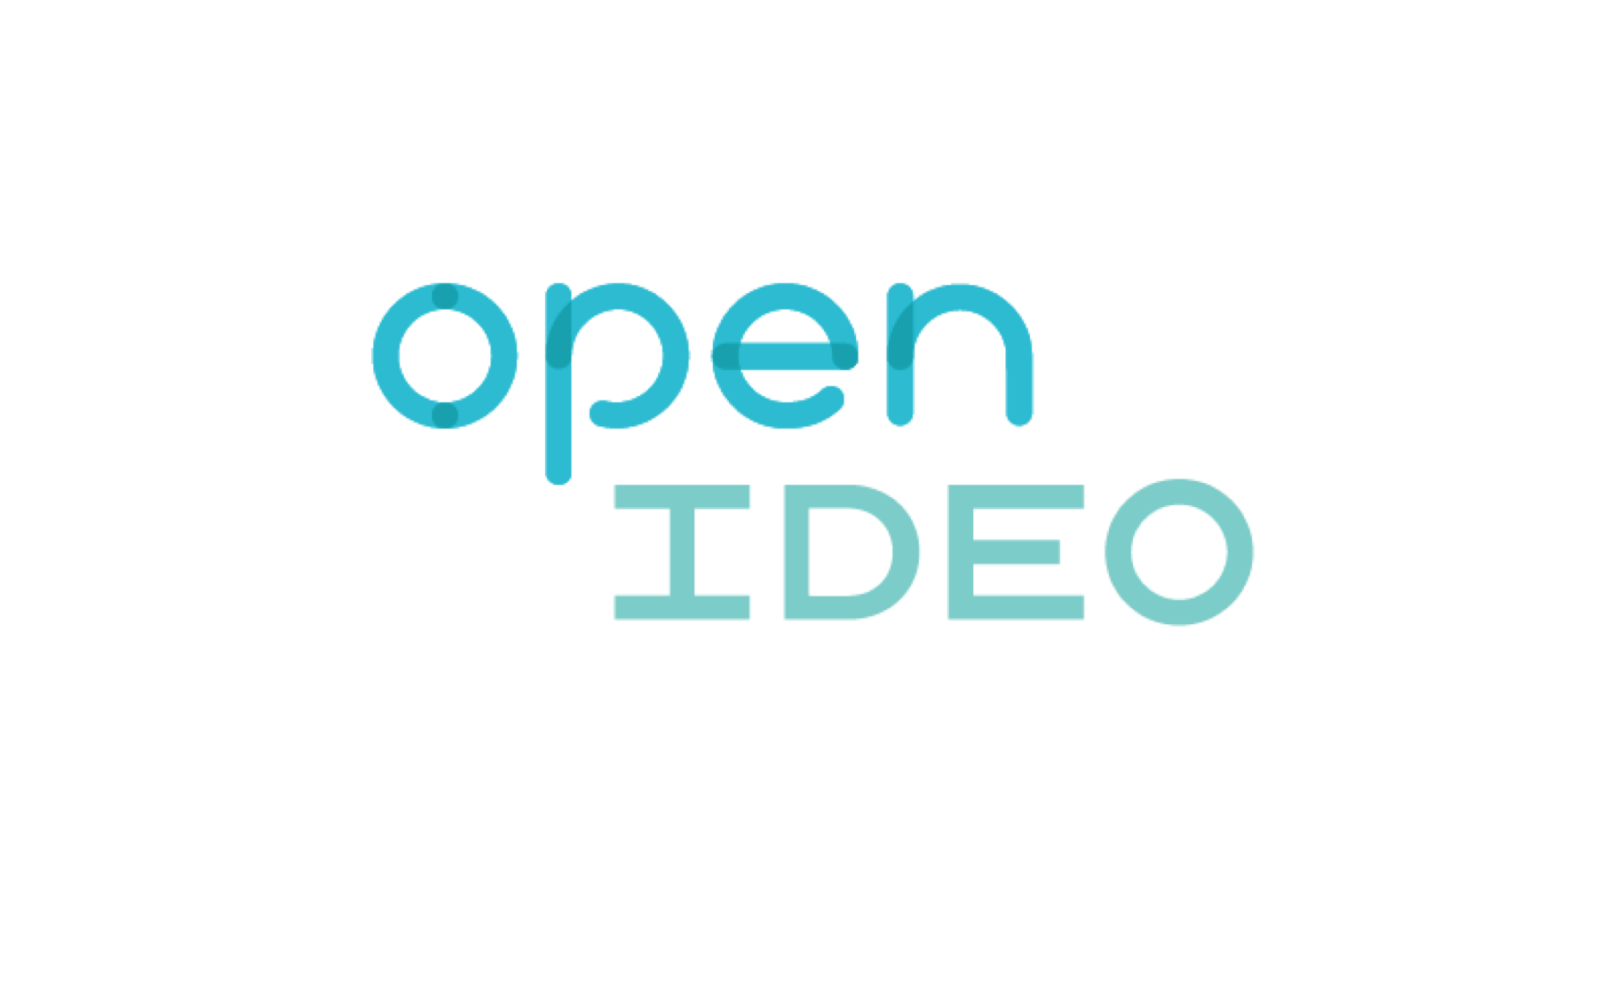 openideo.png